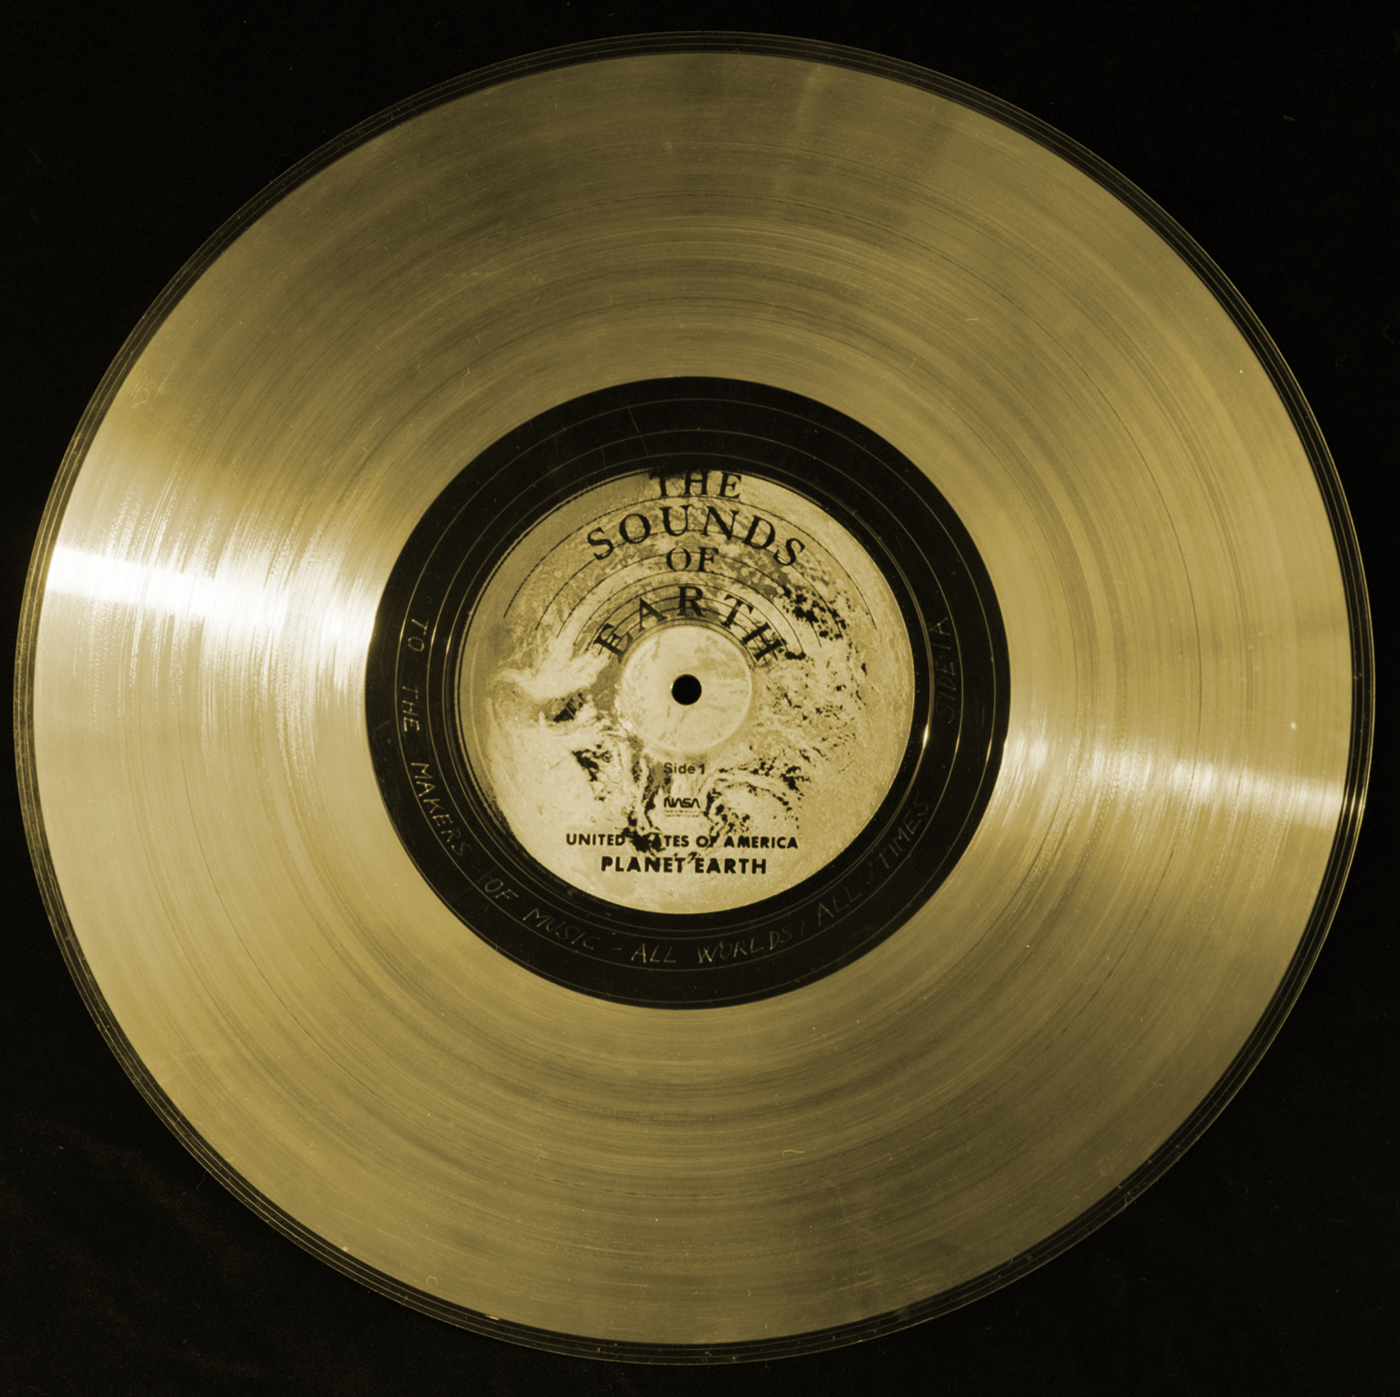 Golden Record Inscription